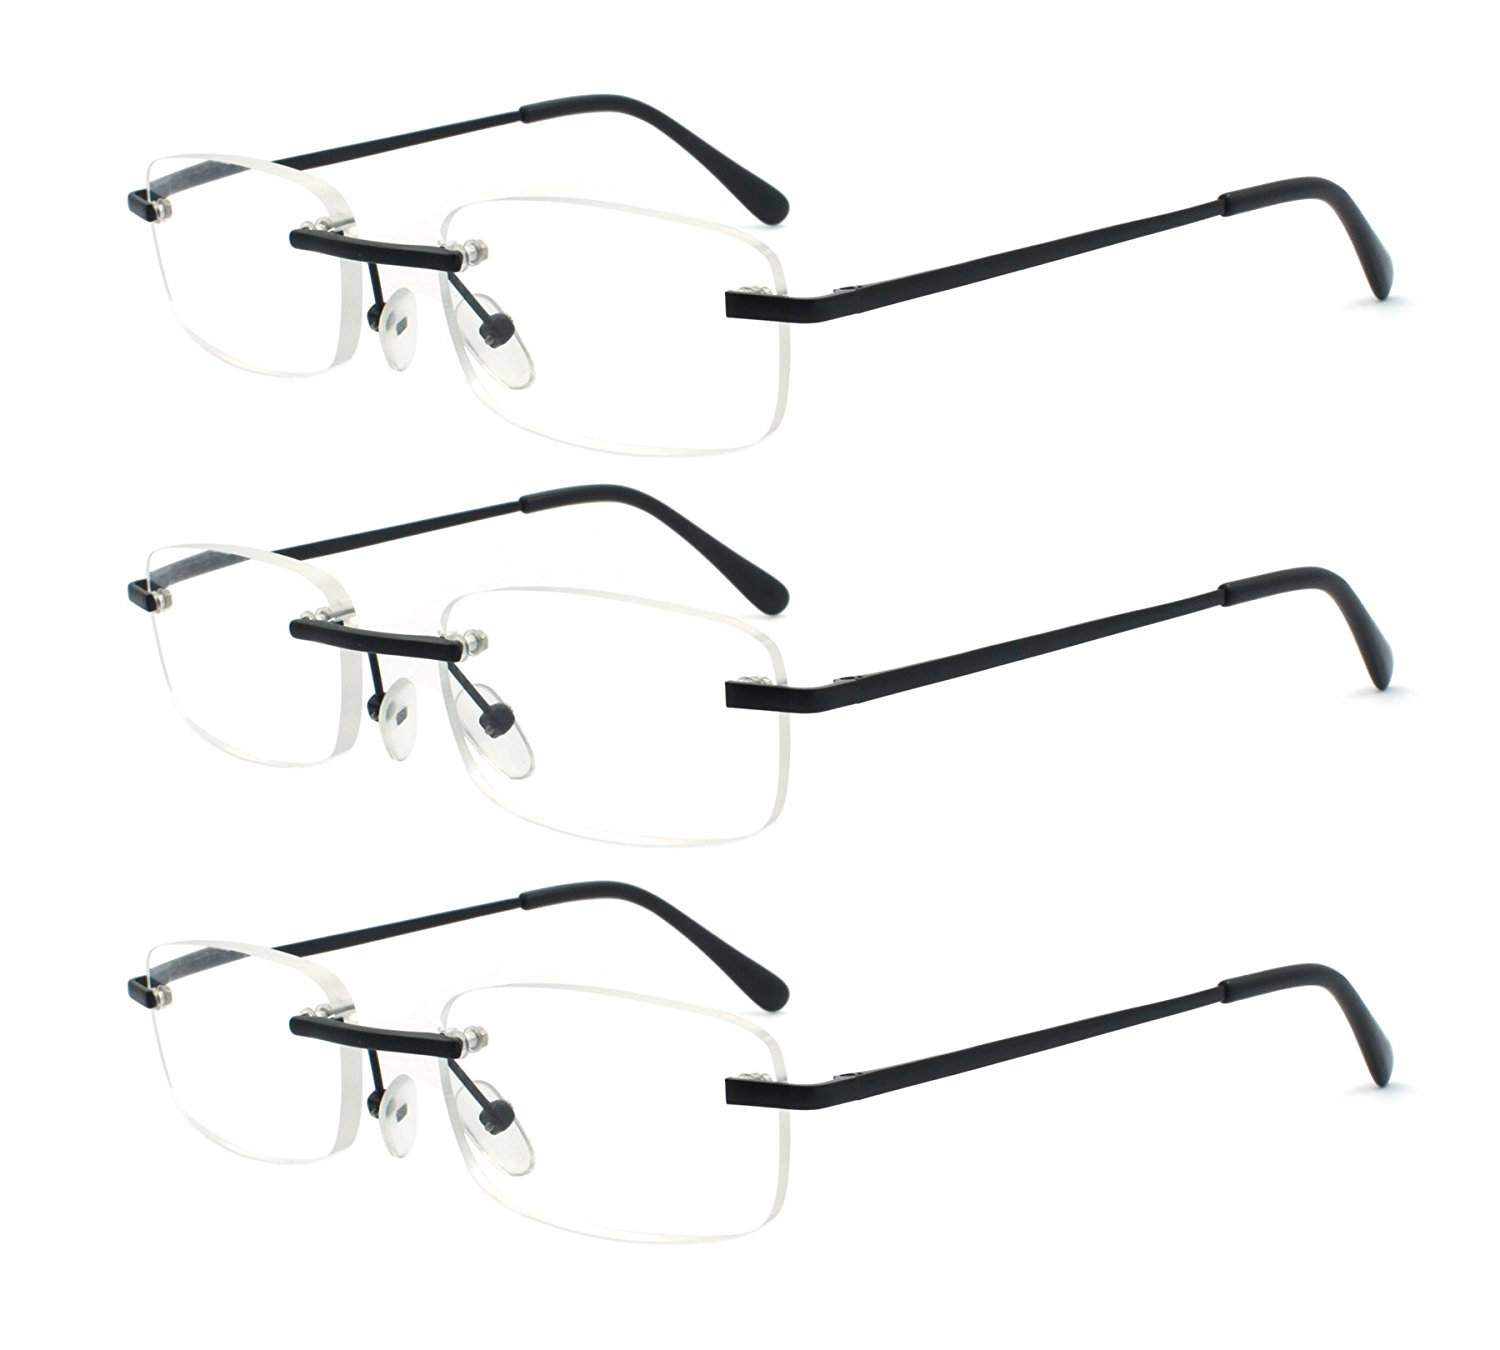 744da66e1b Get Quotations · EYE ZOOM 3 Pack Metal Frame Classic Rectangle Rimless  Reading Glasses with Spring Hinge for Men